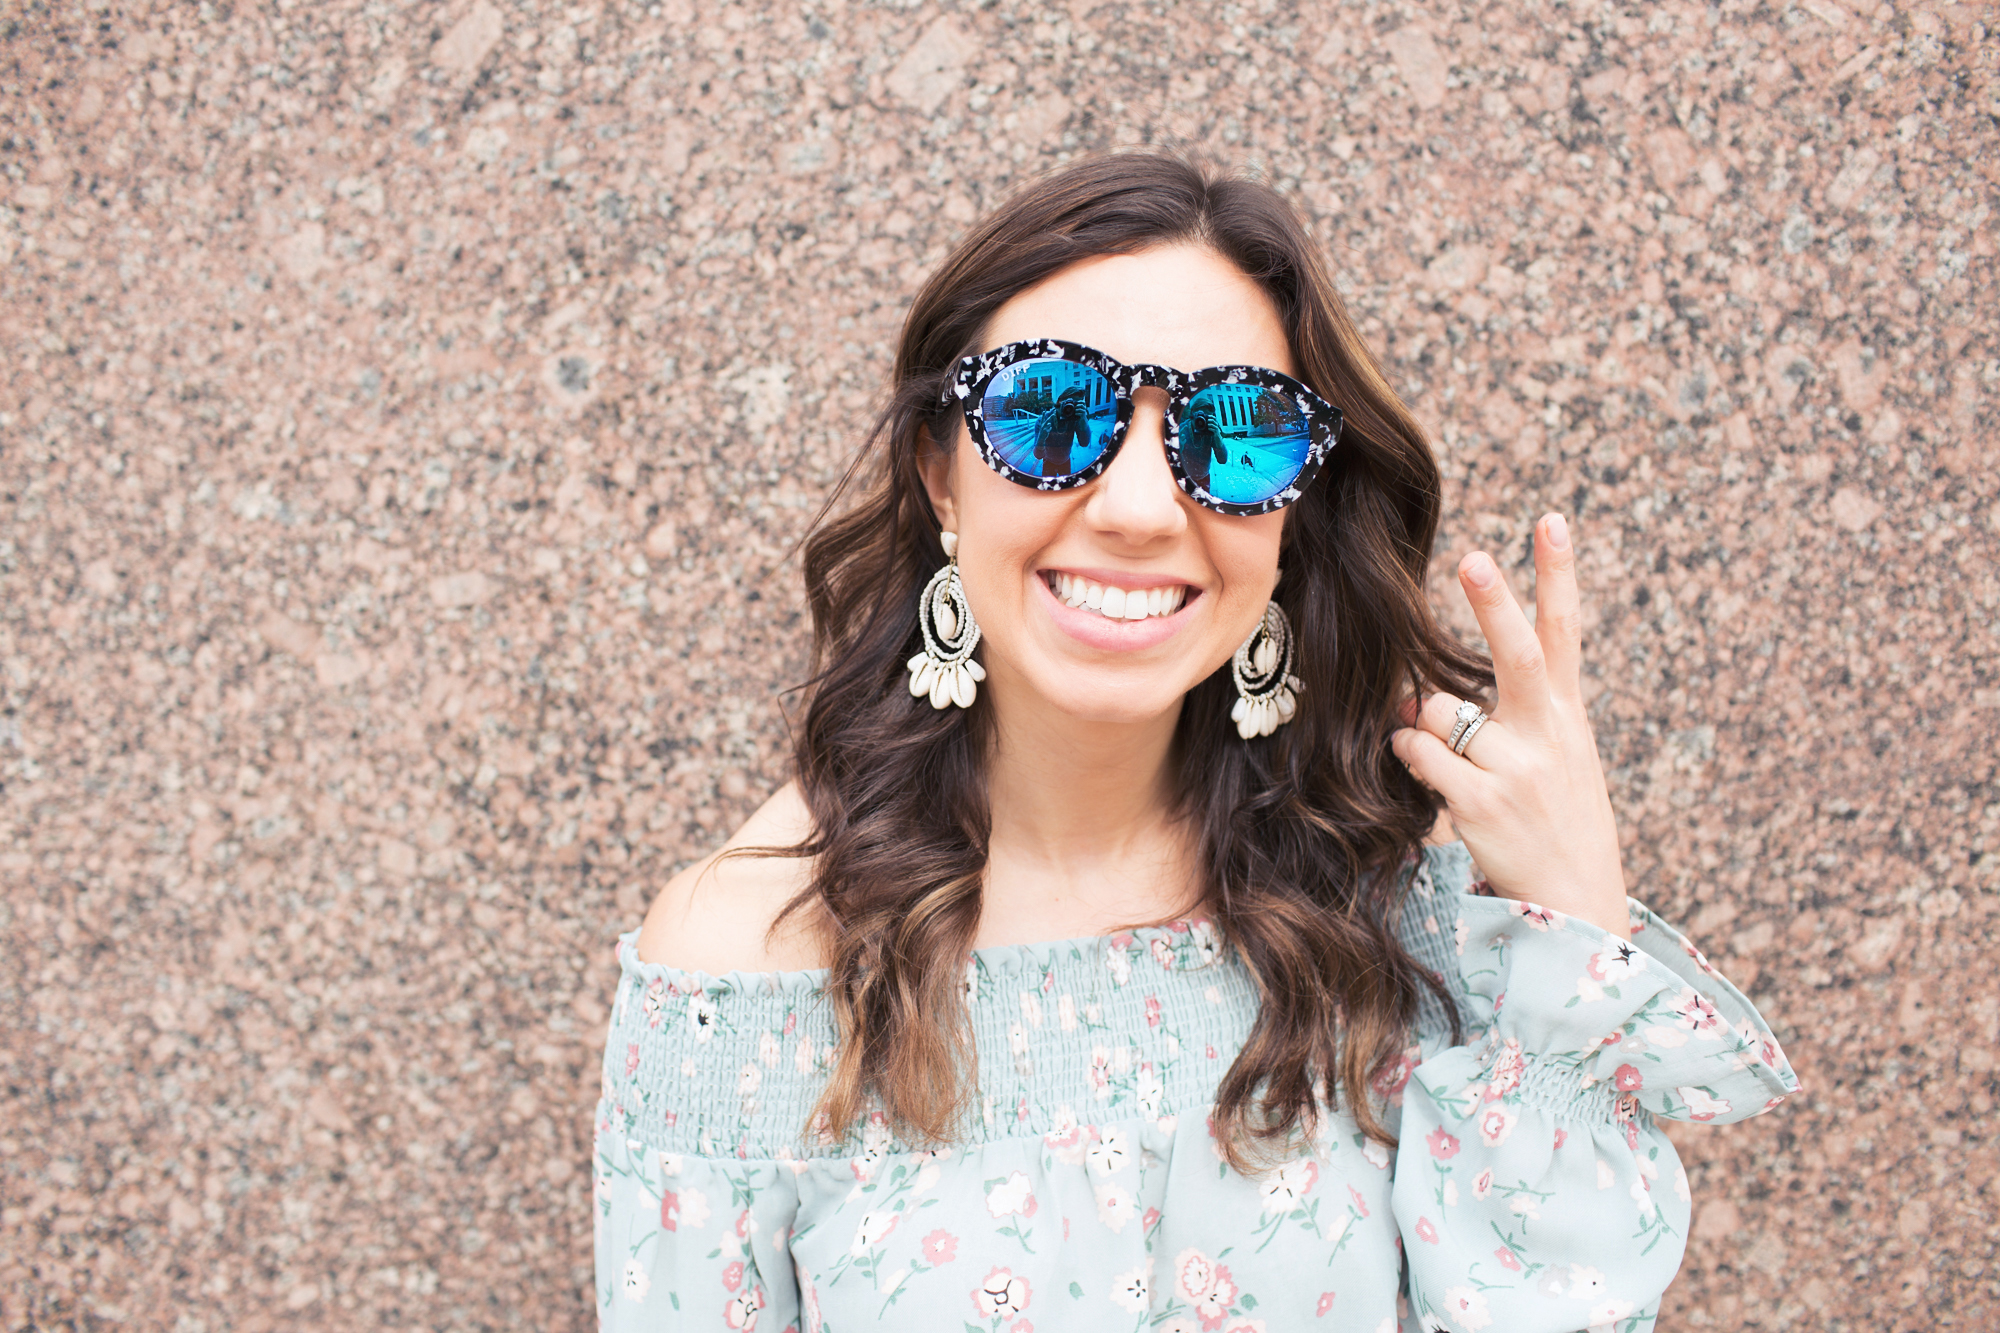 lifestyle blogger Roxanne of Glass of Glam wearing a wild blue denim floral top, express denim, diff eyewear sunnies, and baublebar earrings